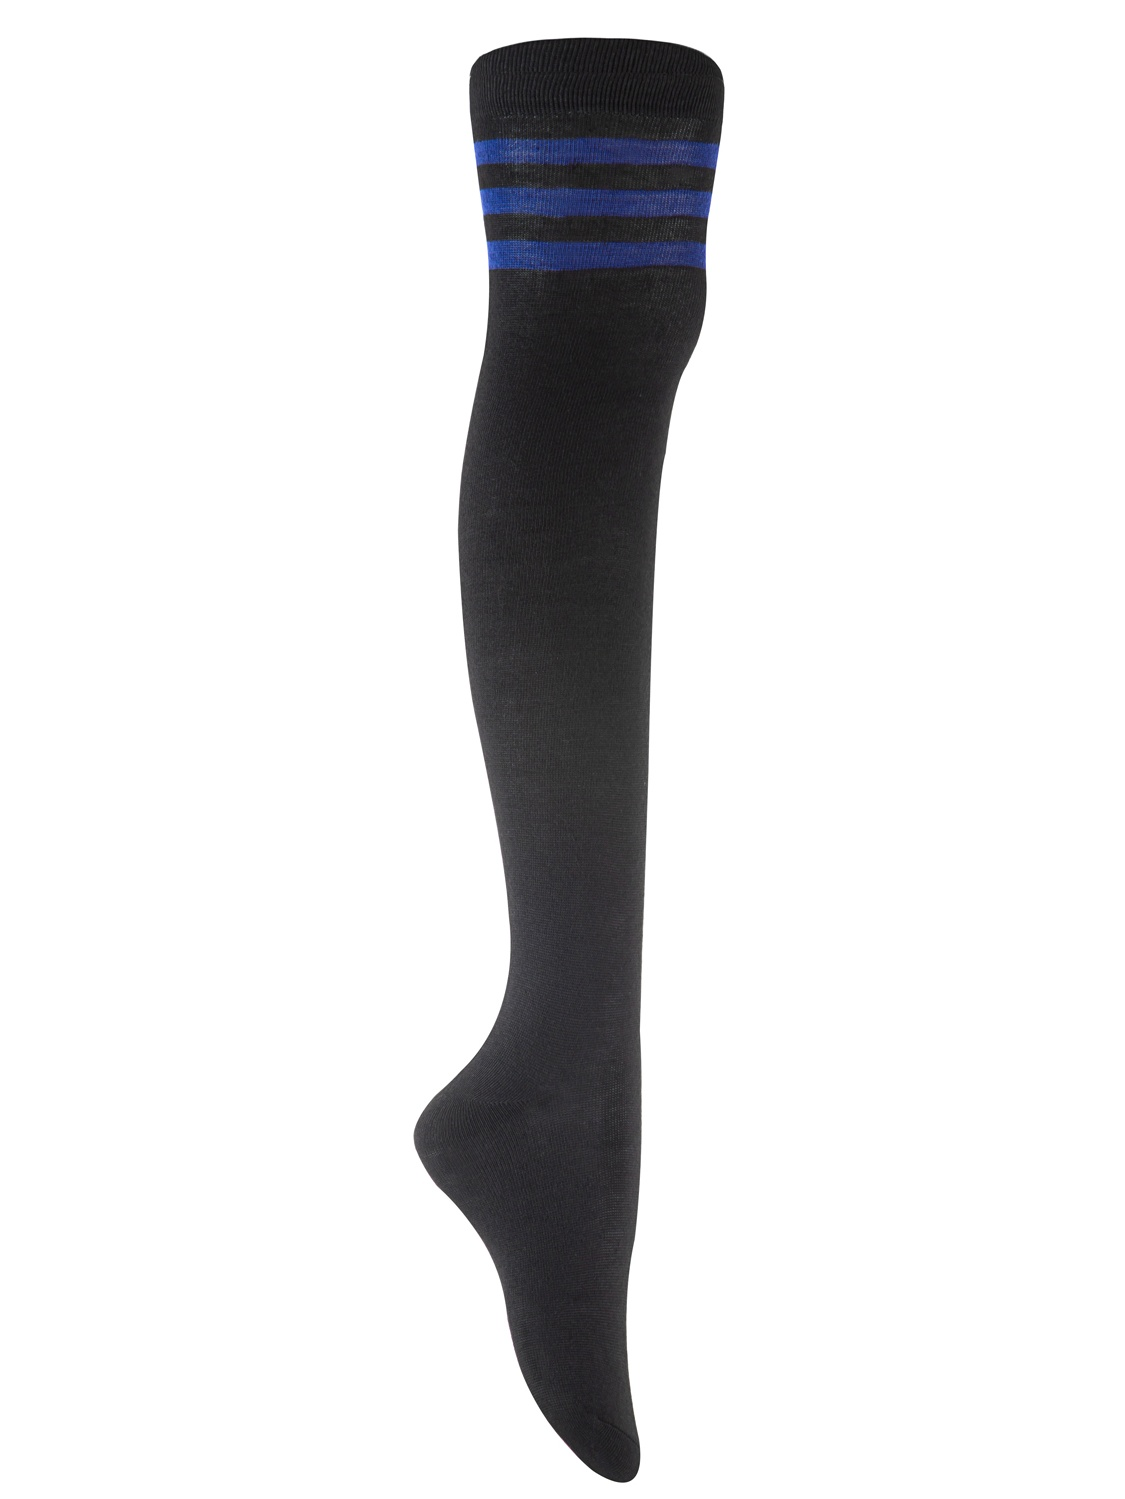 Lian Style Big Girl's 4 Pairs Over-the-Knee Thigh High Knee-high Cotton Socks Size L/XL 4p4c01 (Blue, Red, Purple, Pink Strip)